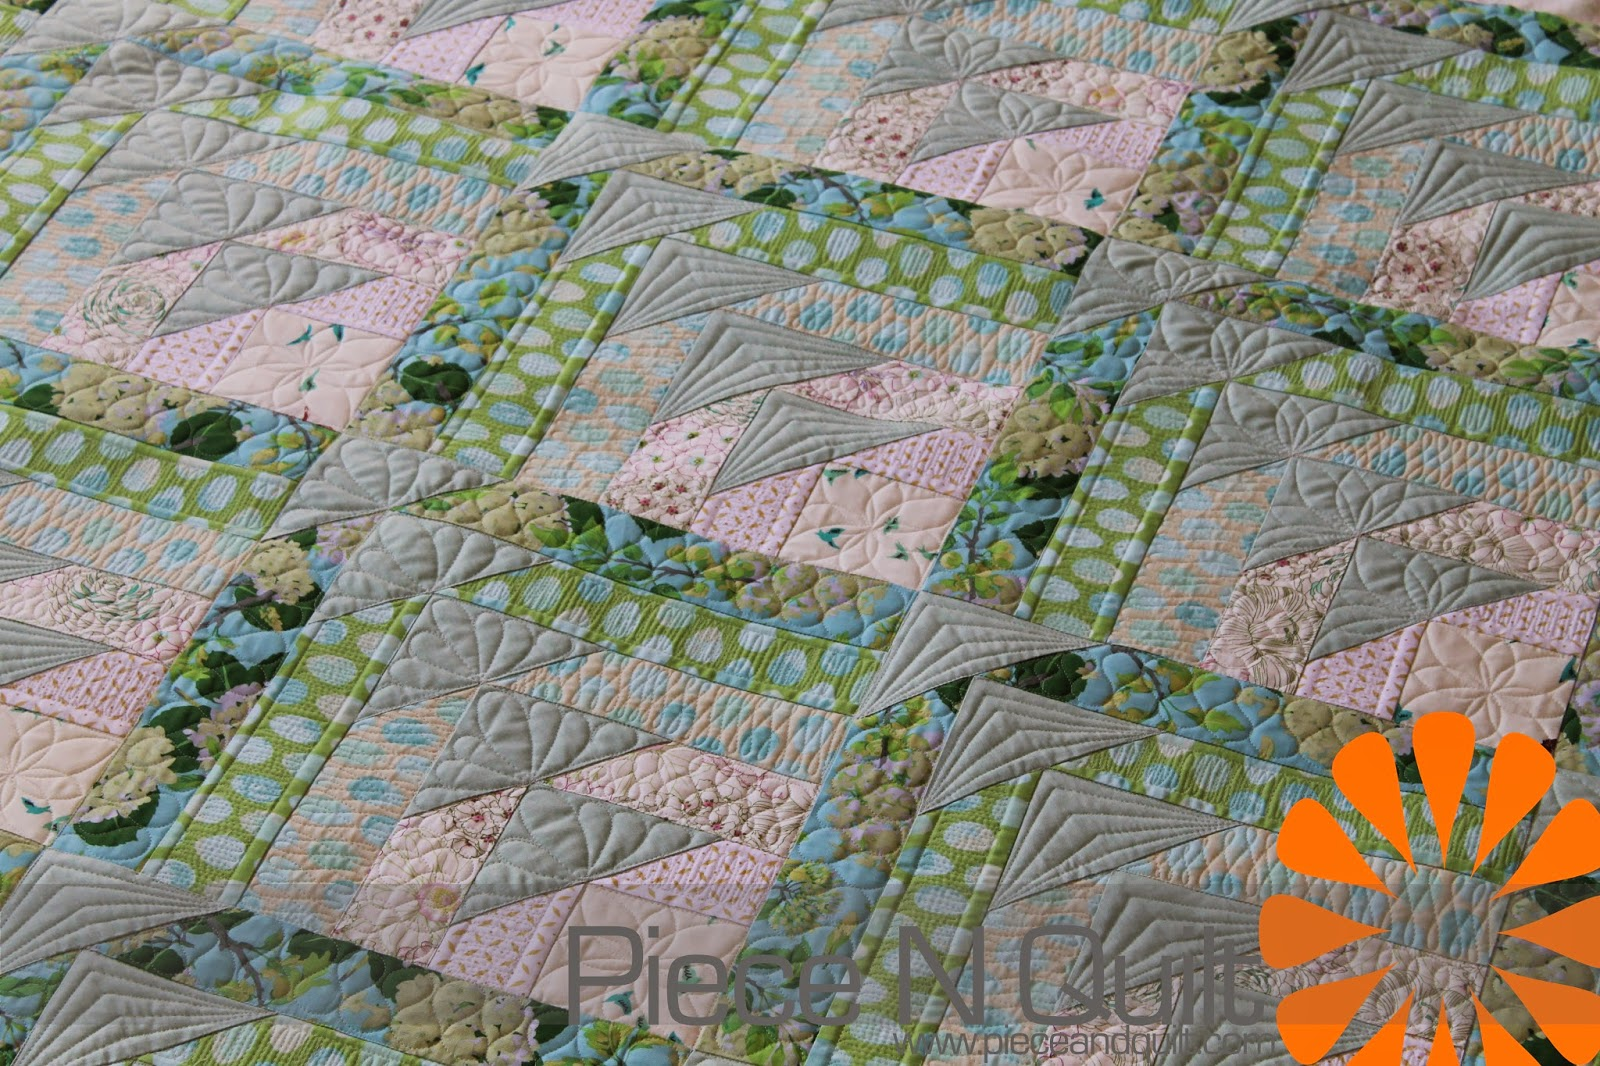 Ideas For Quilting : Piece N Quilt: Custom Machine Quilting - Sharing some Quilting Ideas